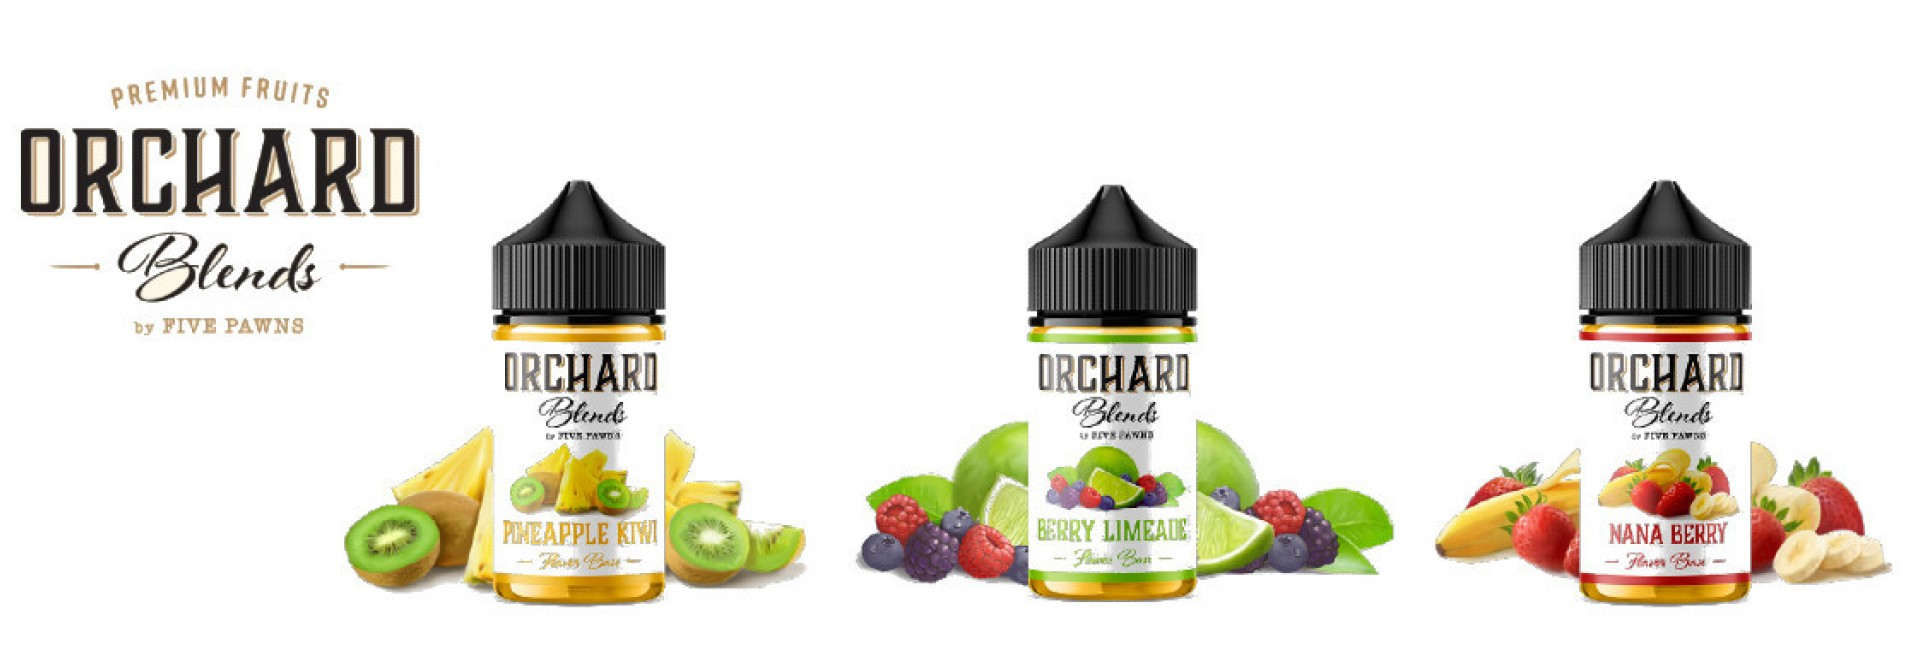 five pawns orchard banner